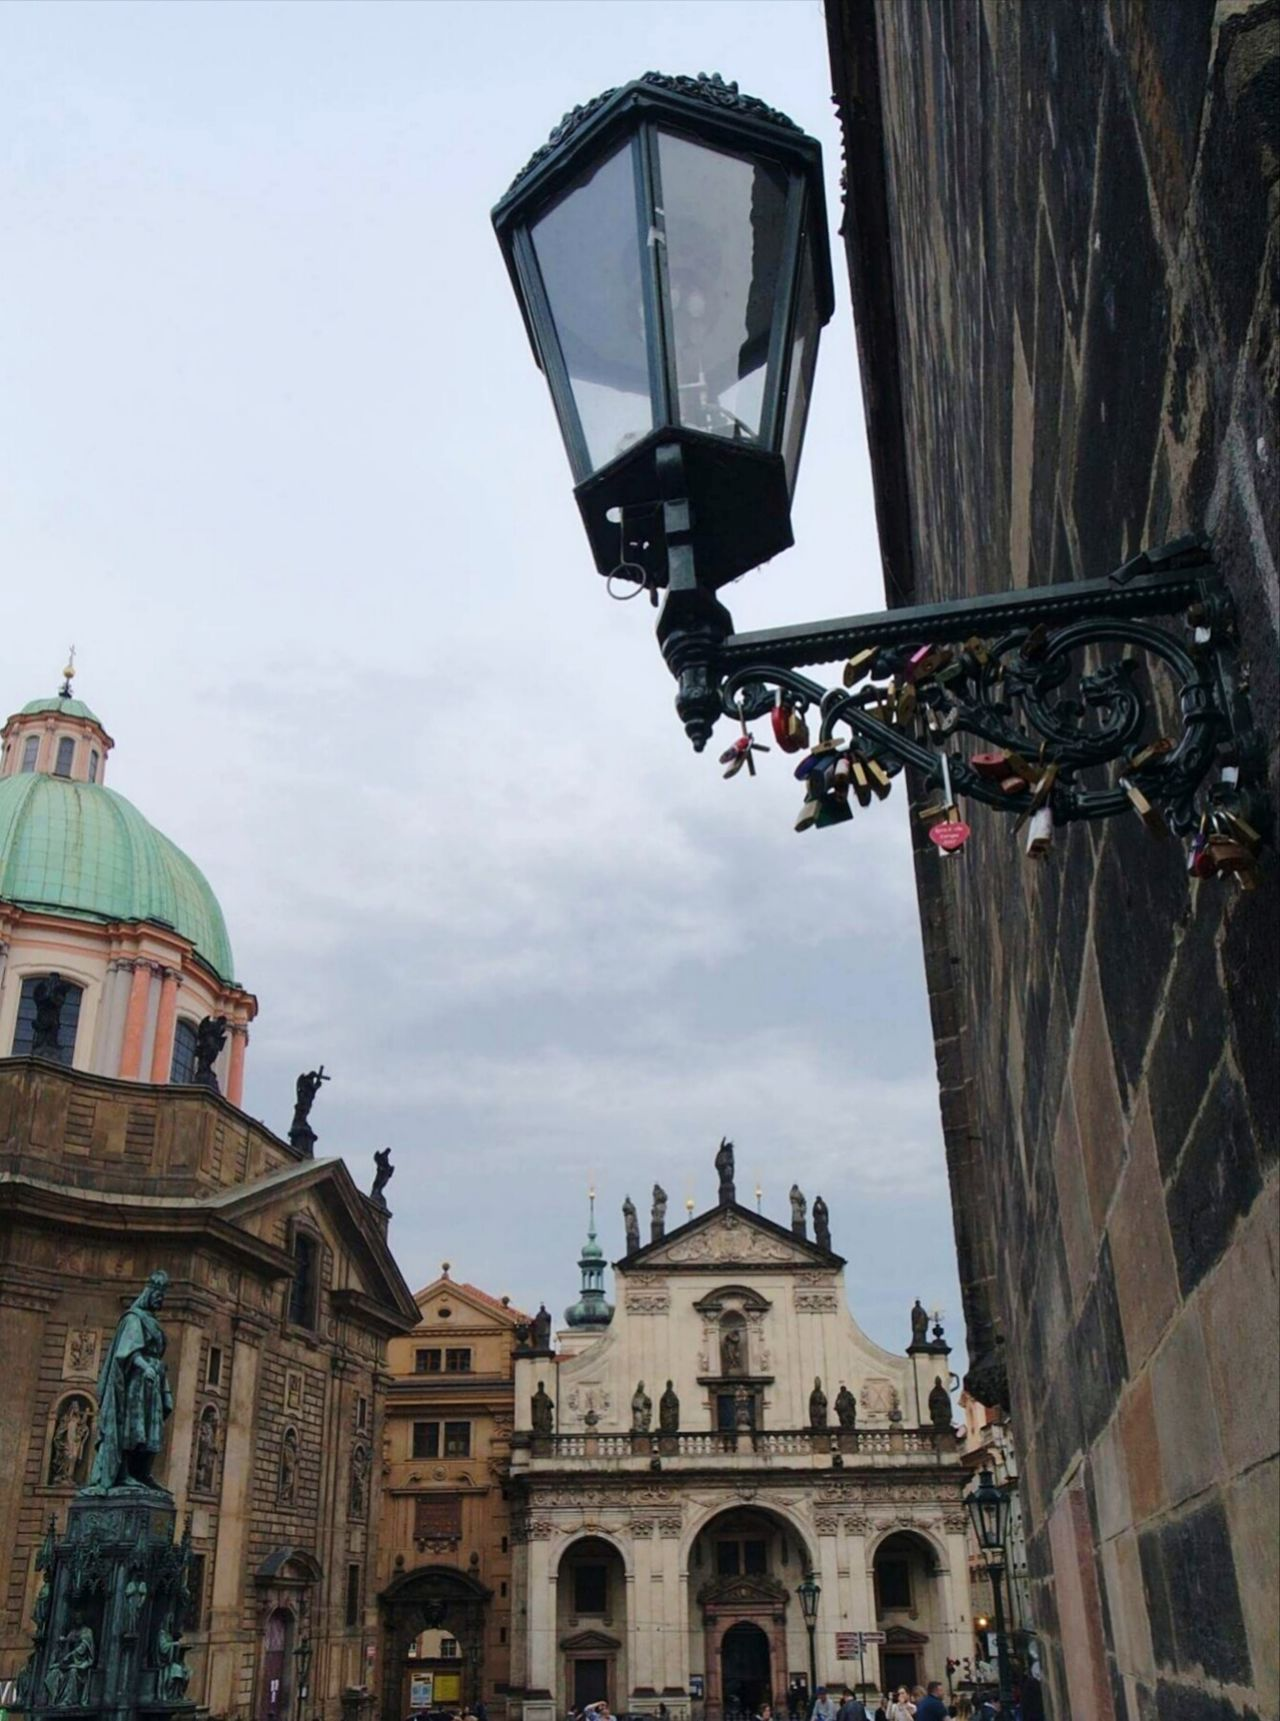 Prague. Architecture Low Angle View No People Eyeem Market Outdoors Sky City Statue Day Churches Cupola Lanterna Padlocks Padlocks On Bridge Old Town Old Buildings The Street Photographer - 2017 EyeEm Awards EyeEm Best Shots EyeEmNewHere Travel Photography Travelingtheworld  Travel Travel Destinations Travelpic Photooftheday